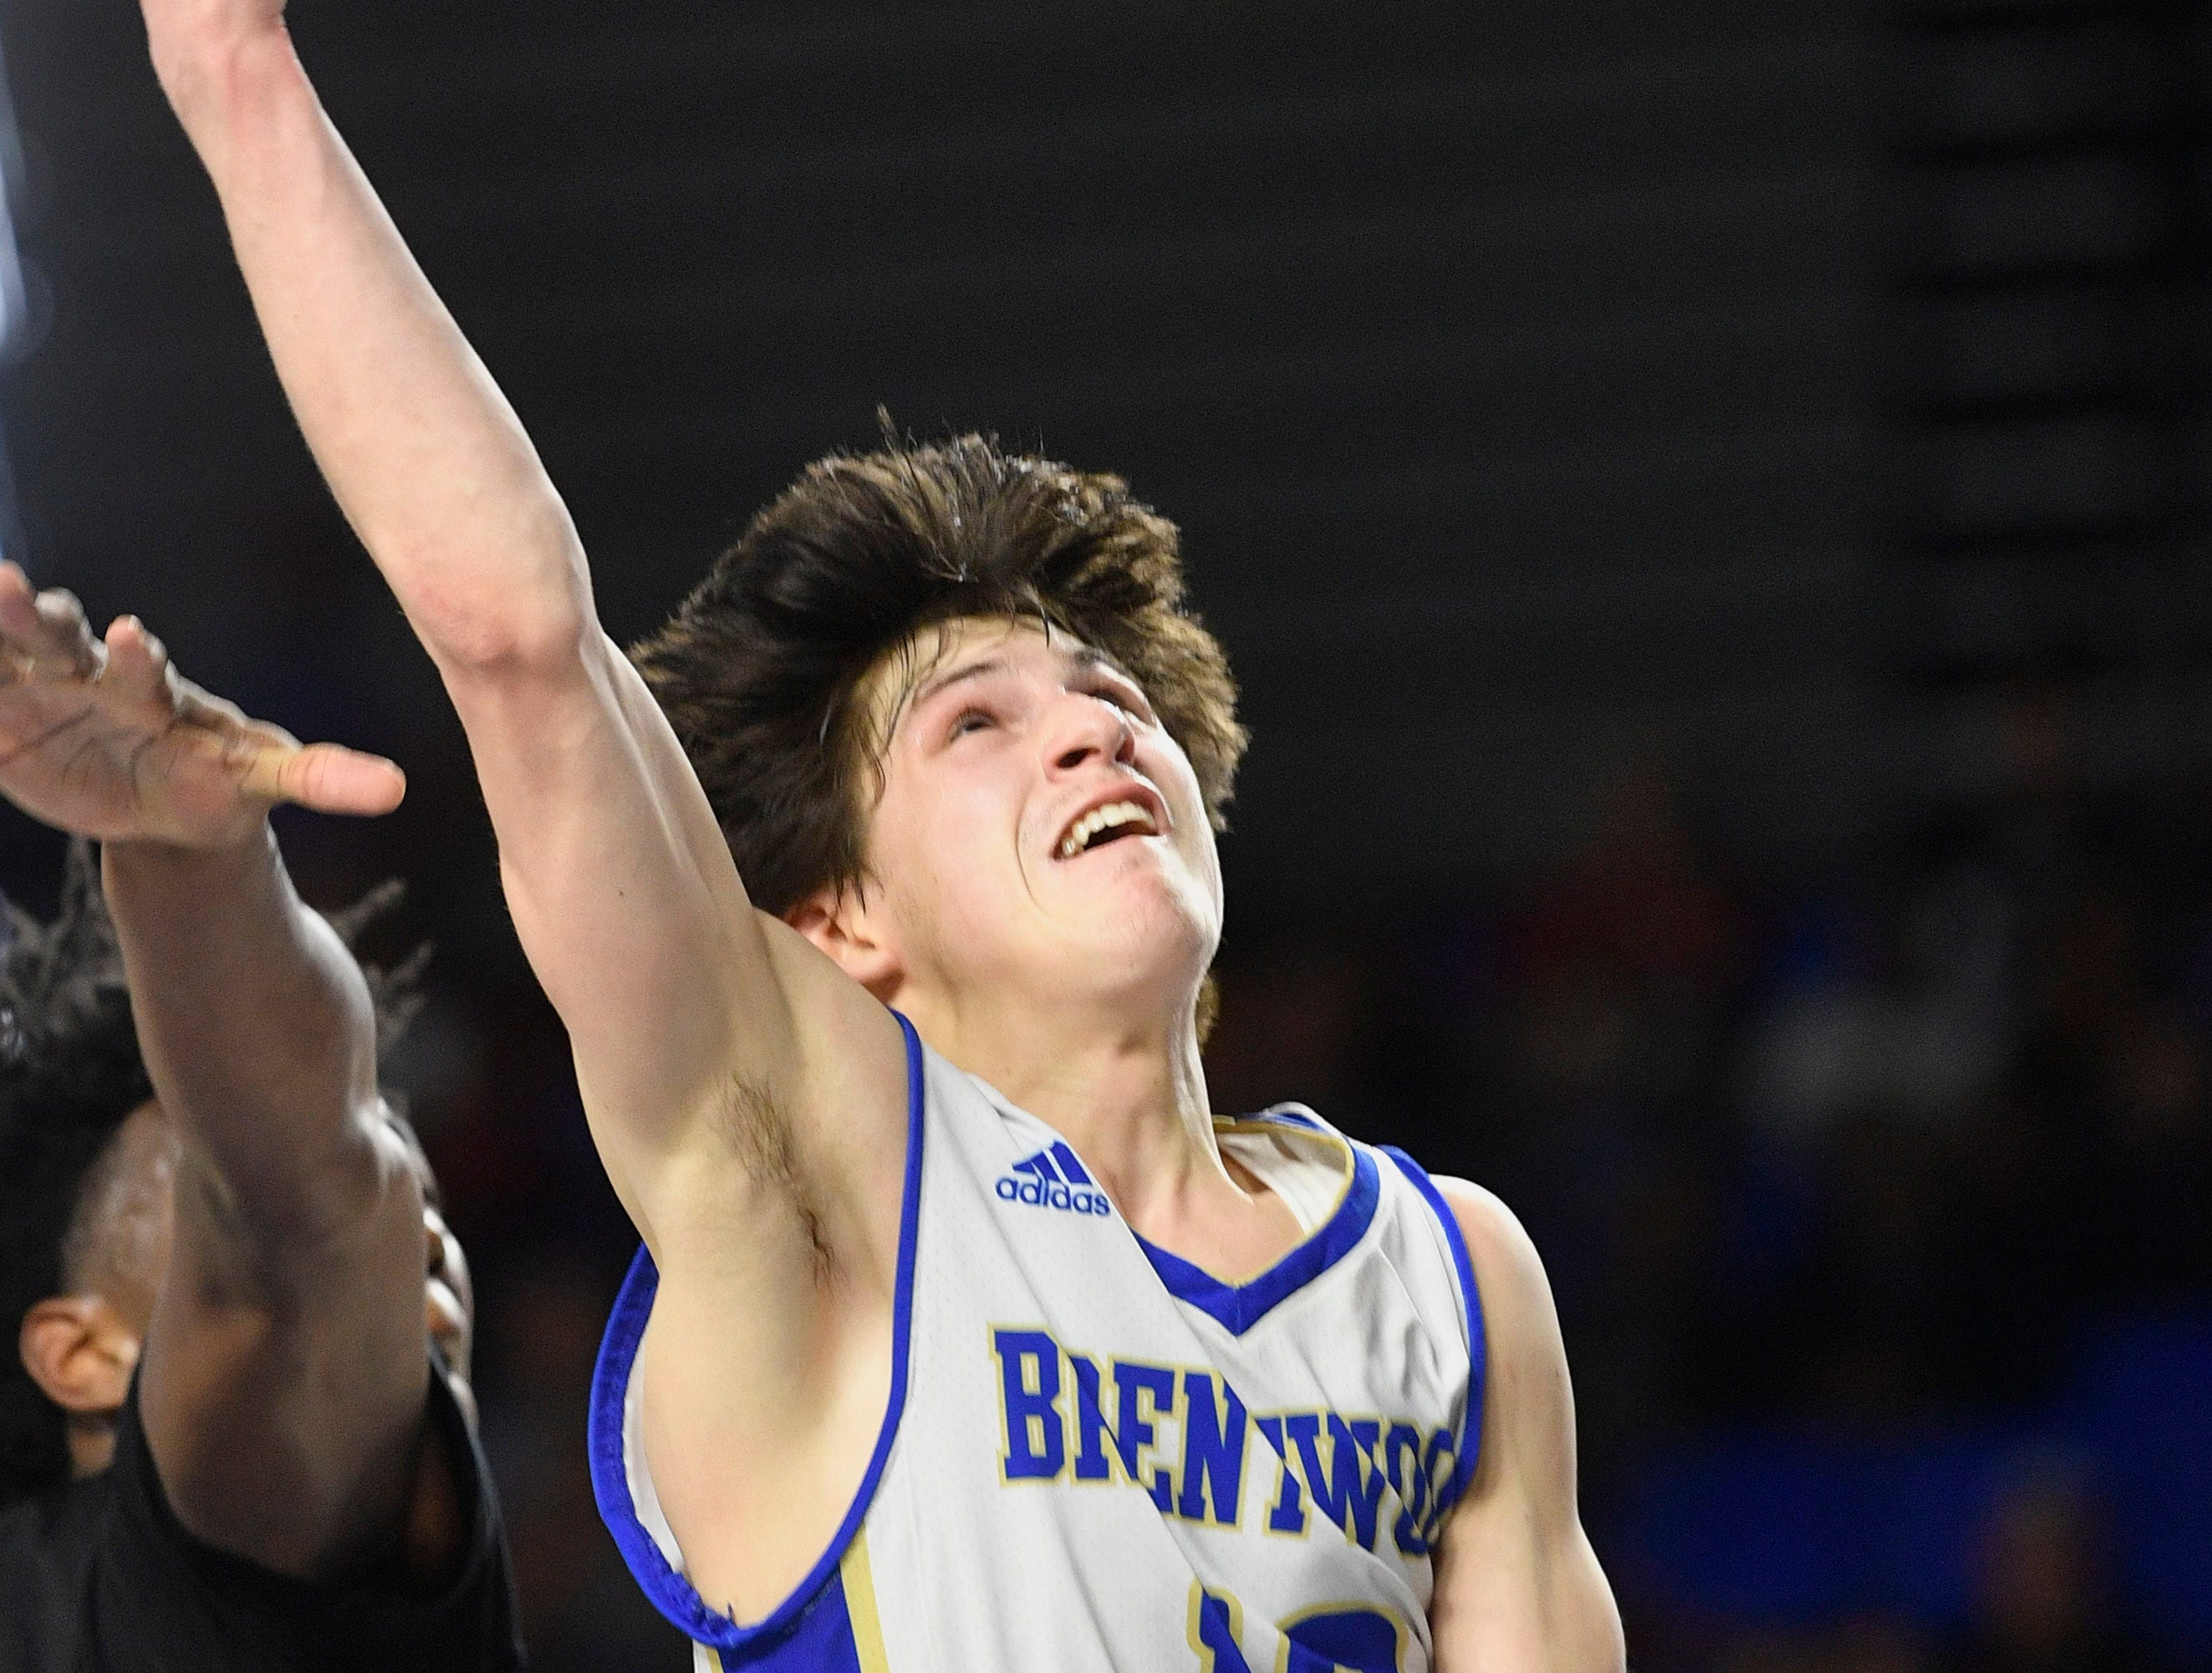 Brentwood's Preston Moore (12) goes up for a shot as Brentwood plays Memphis East in the TSSAA Class AAA semifinal  Friday, March 15, 2019, in Murfreesboro, Tenn.